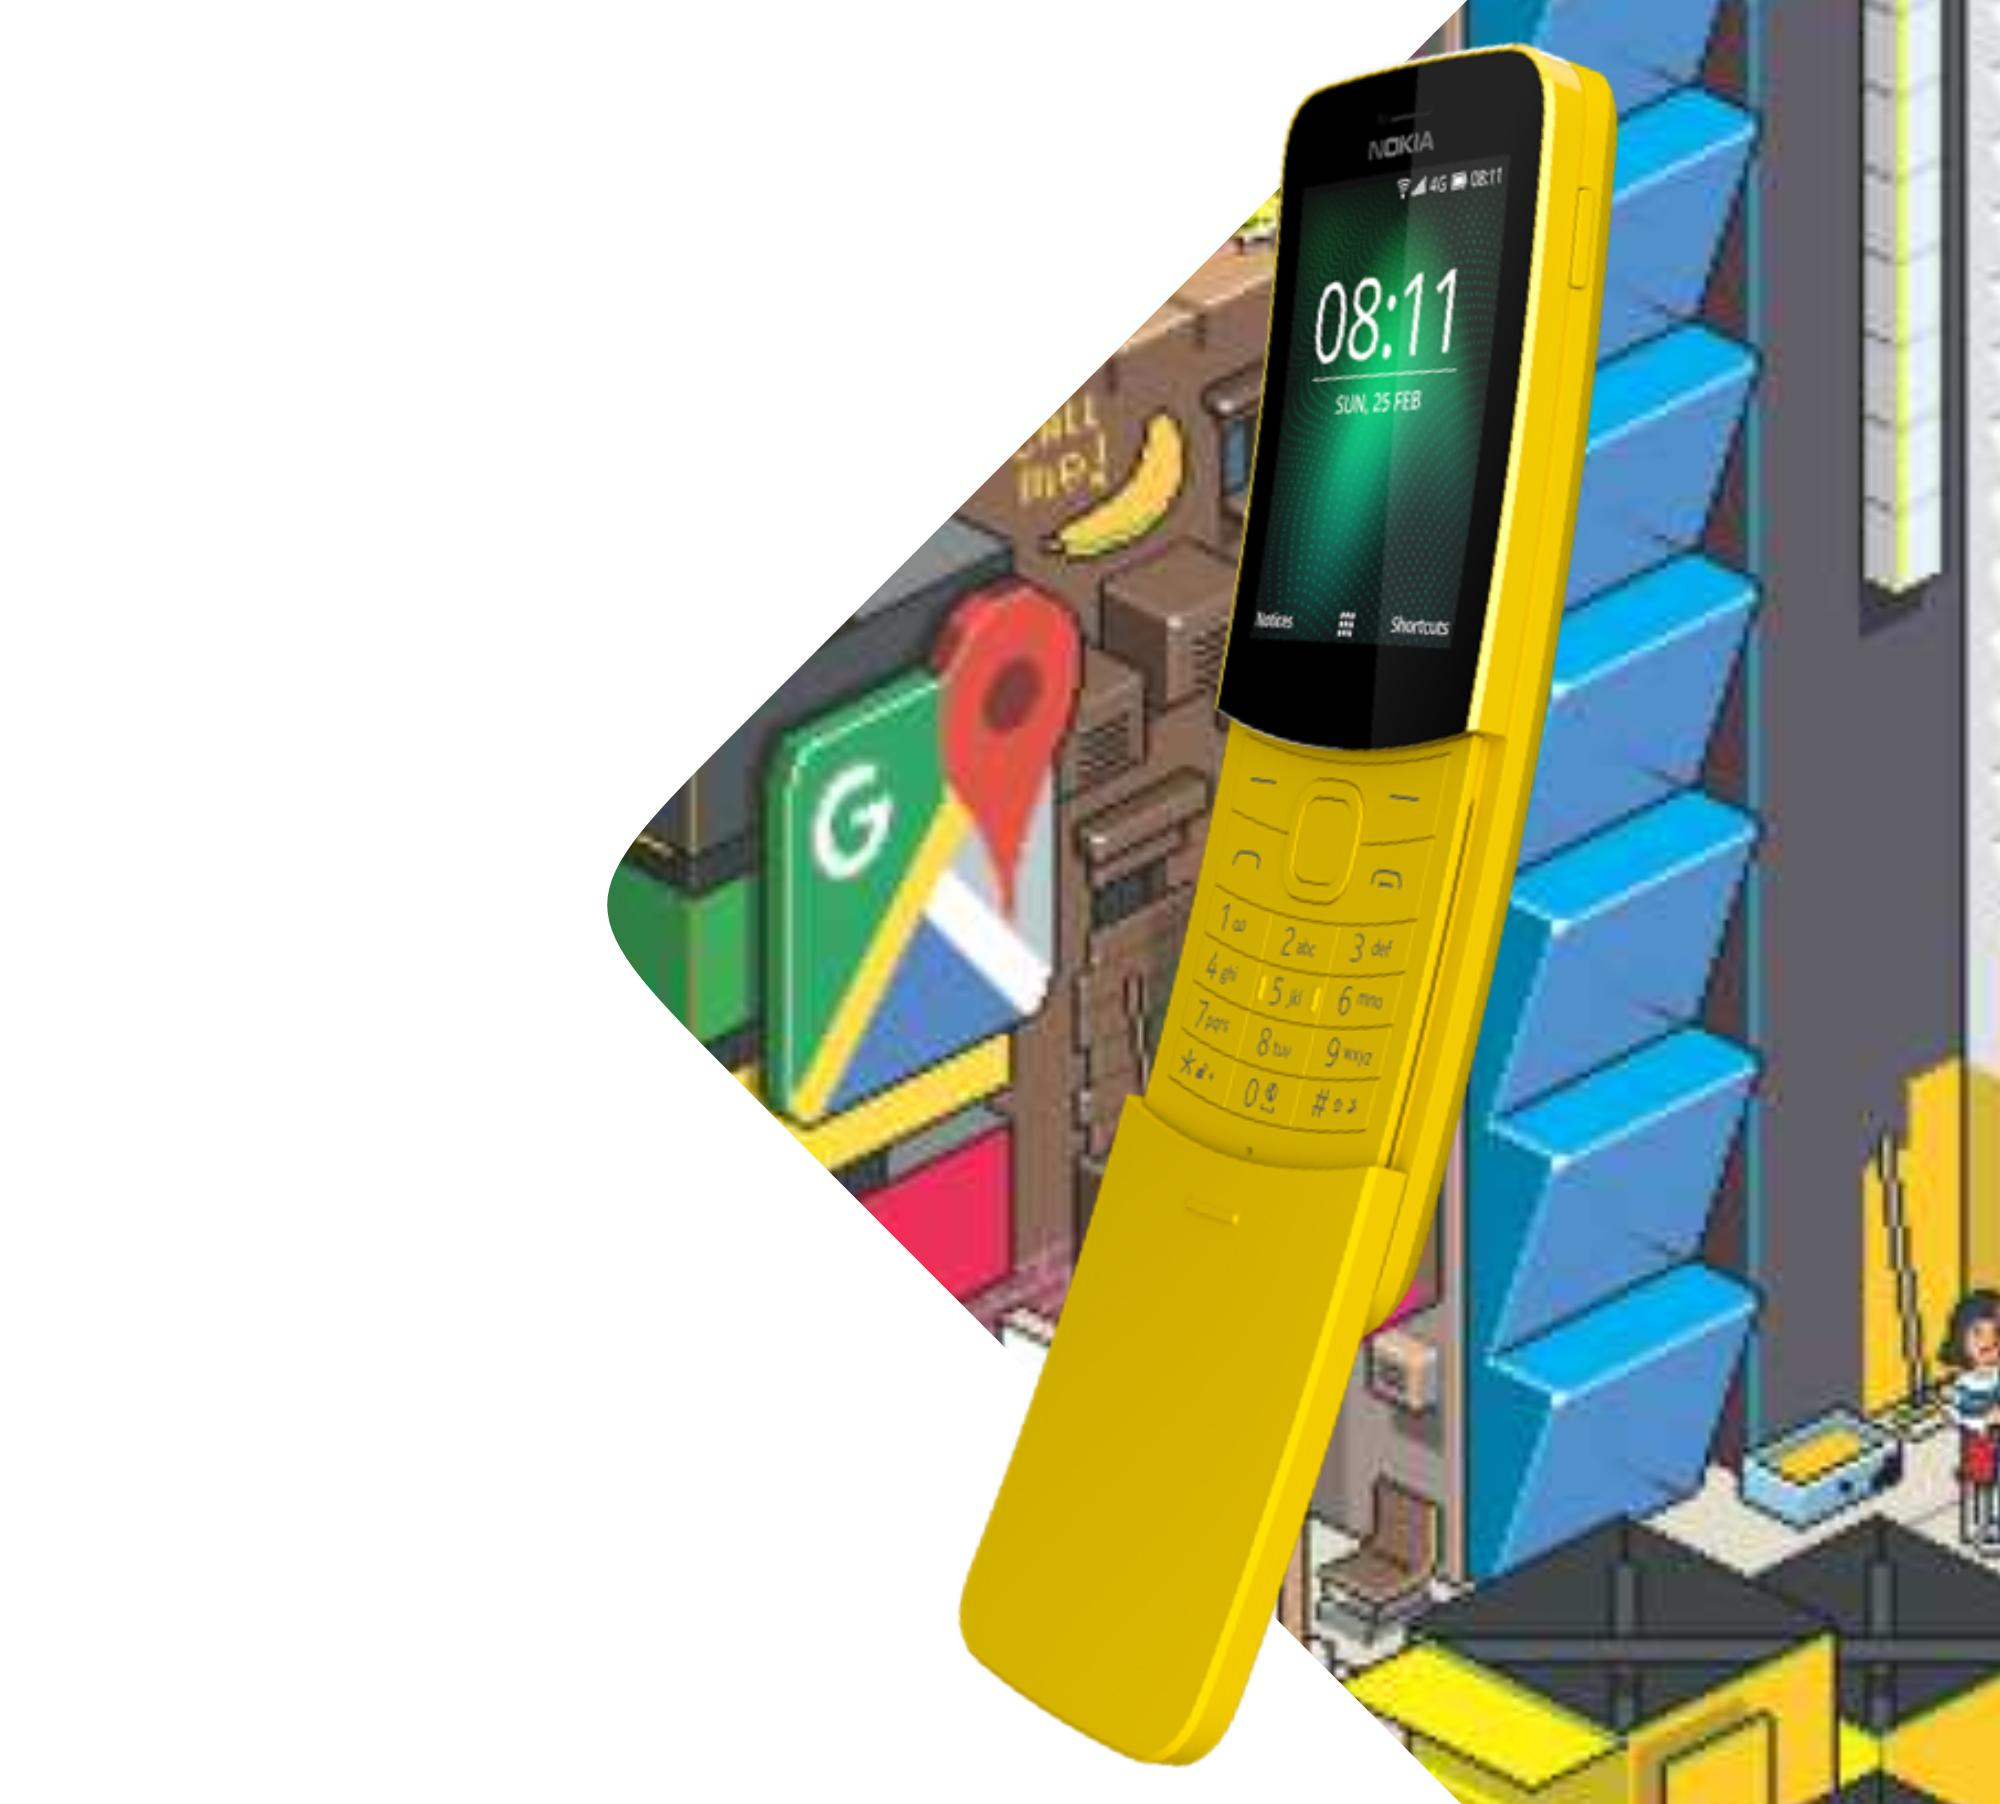 Nokia 8110: Iconic 'banana phone' that starred in The Matrix